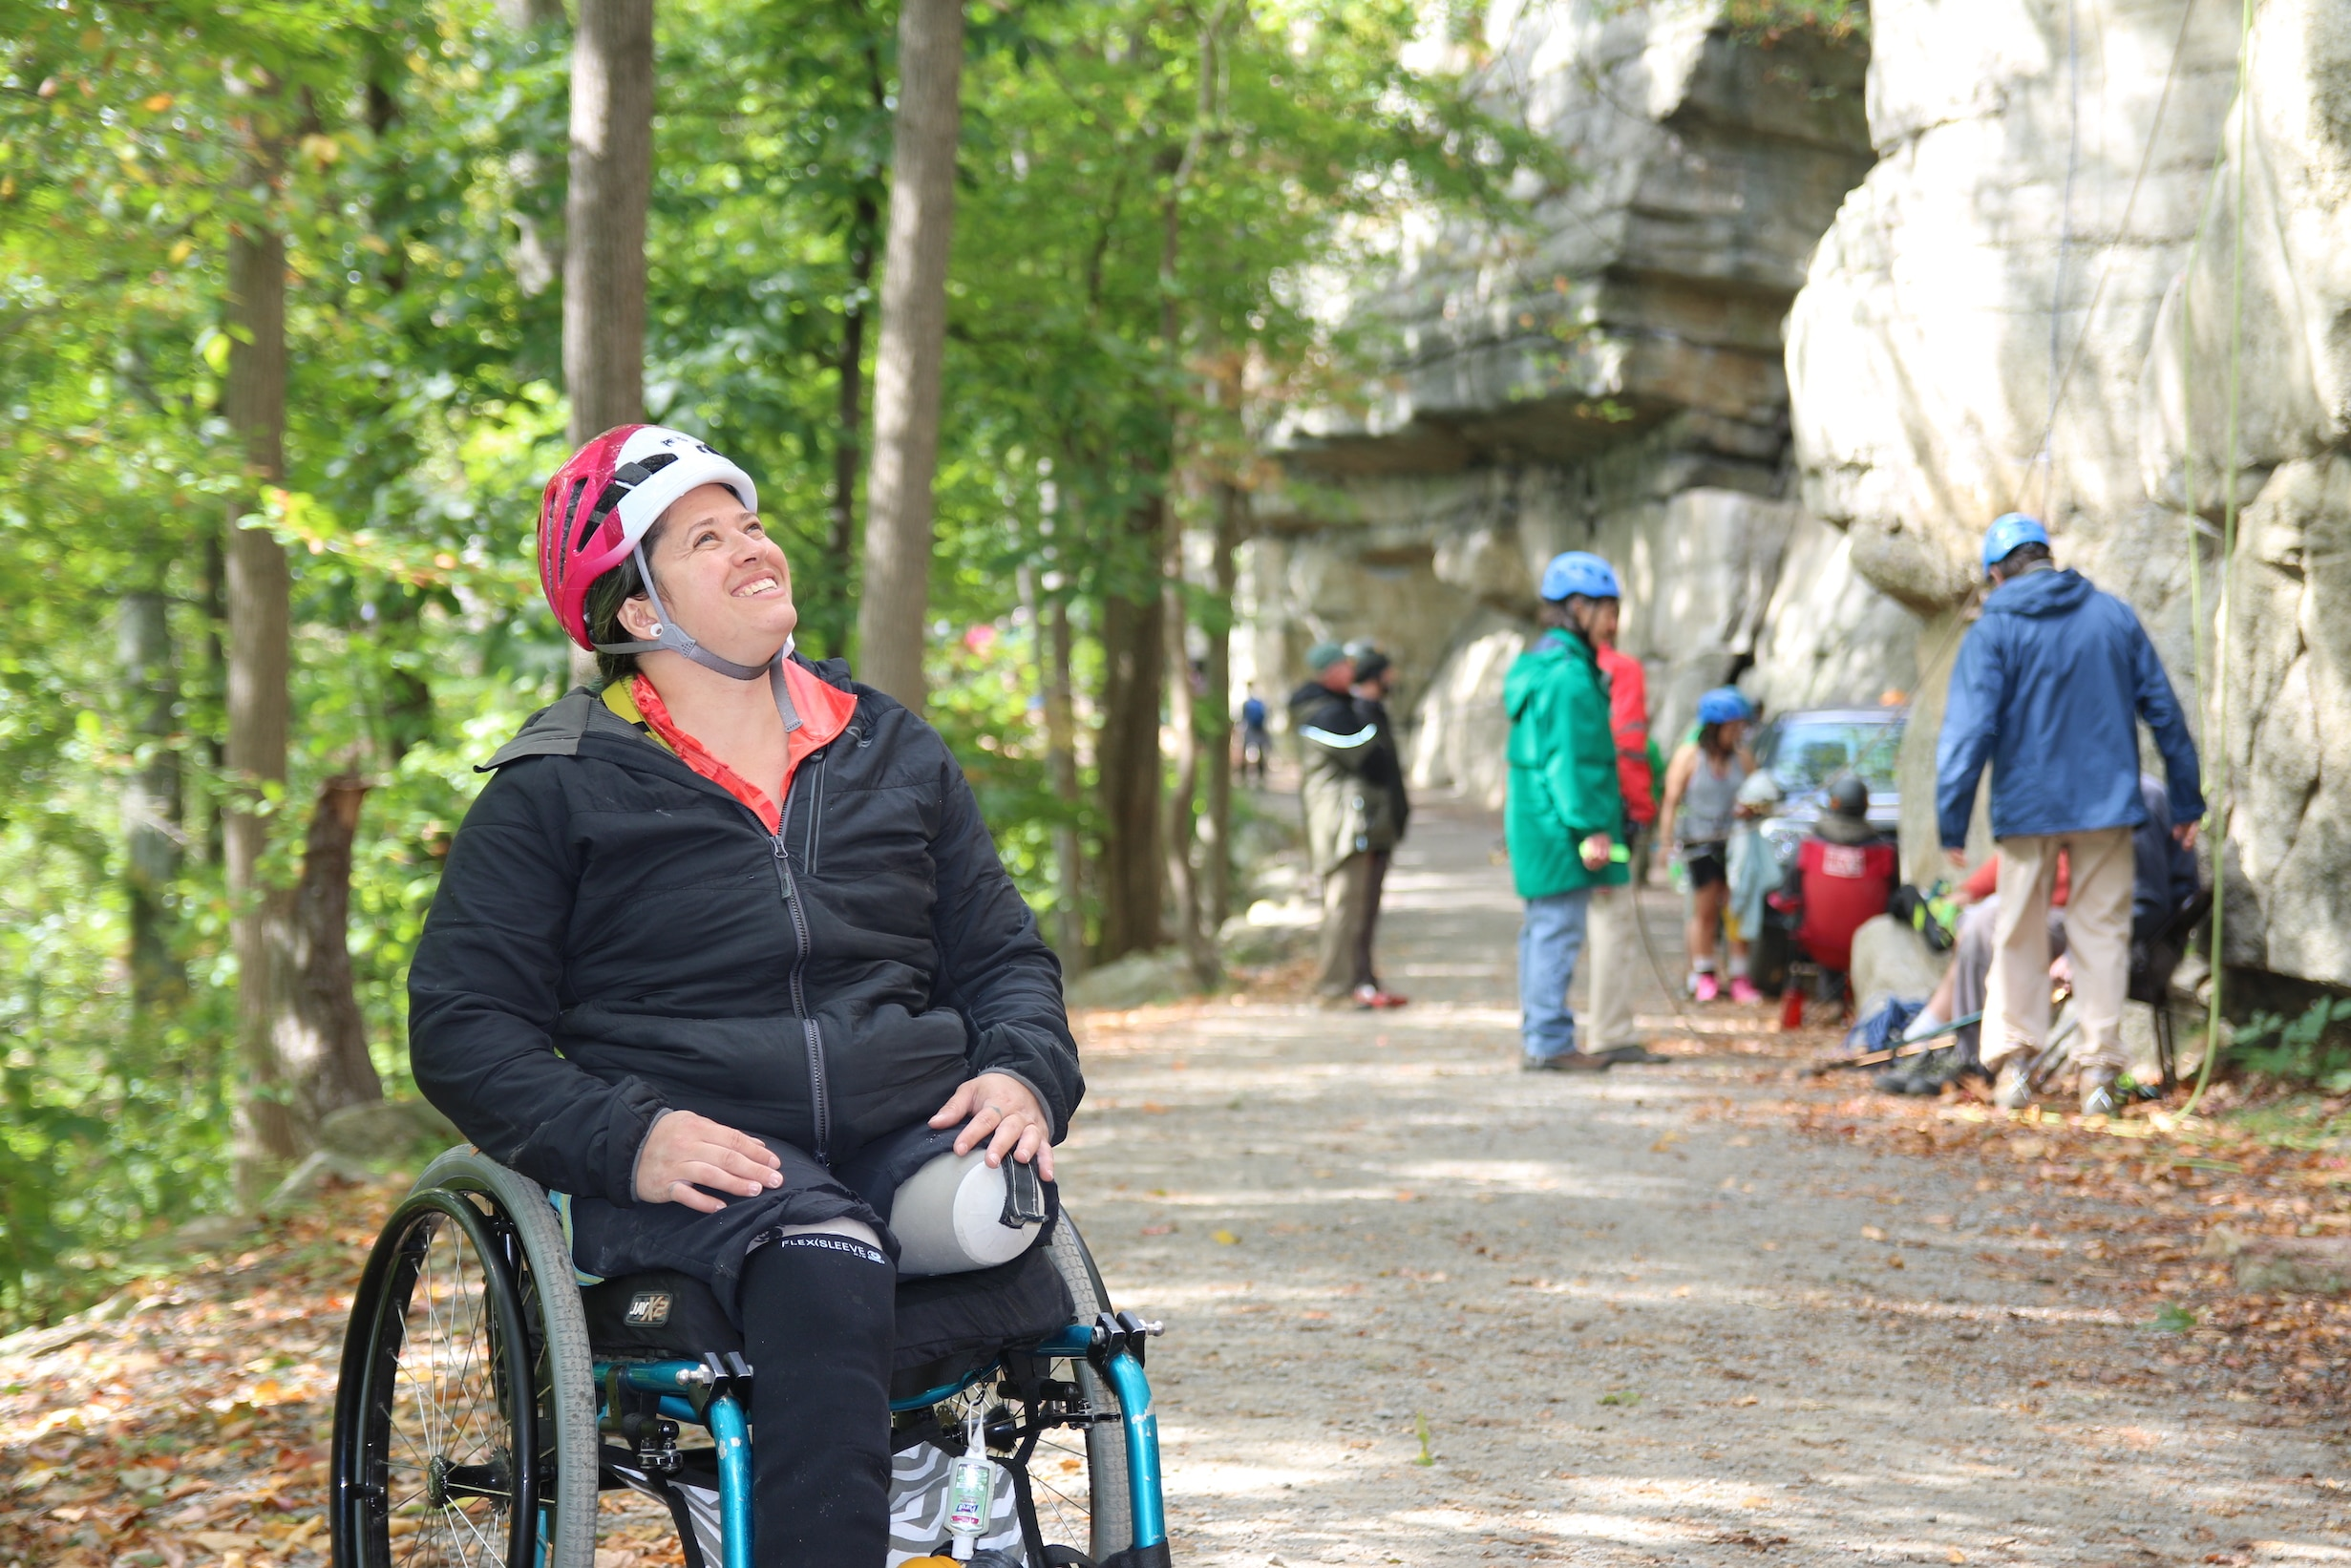 A woman single-leg amputee in a wheelchair wearing a helmet looks up toward the mountain and smiles. In the background, people prepare their climbing equipment.